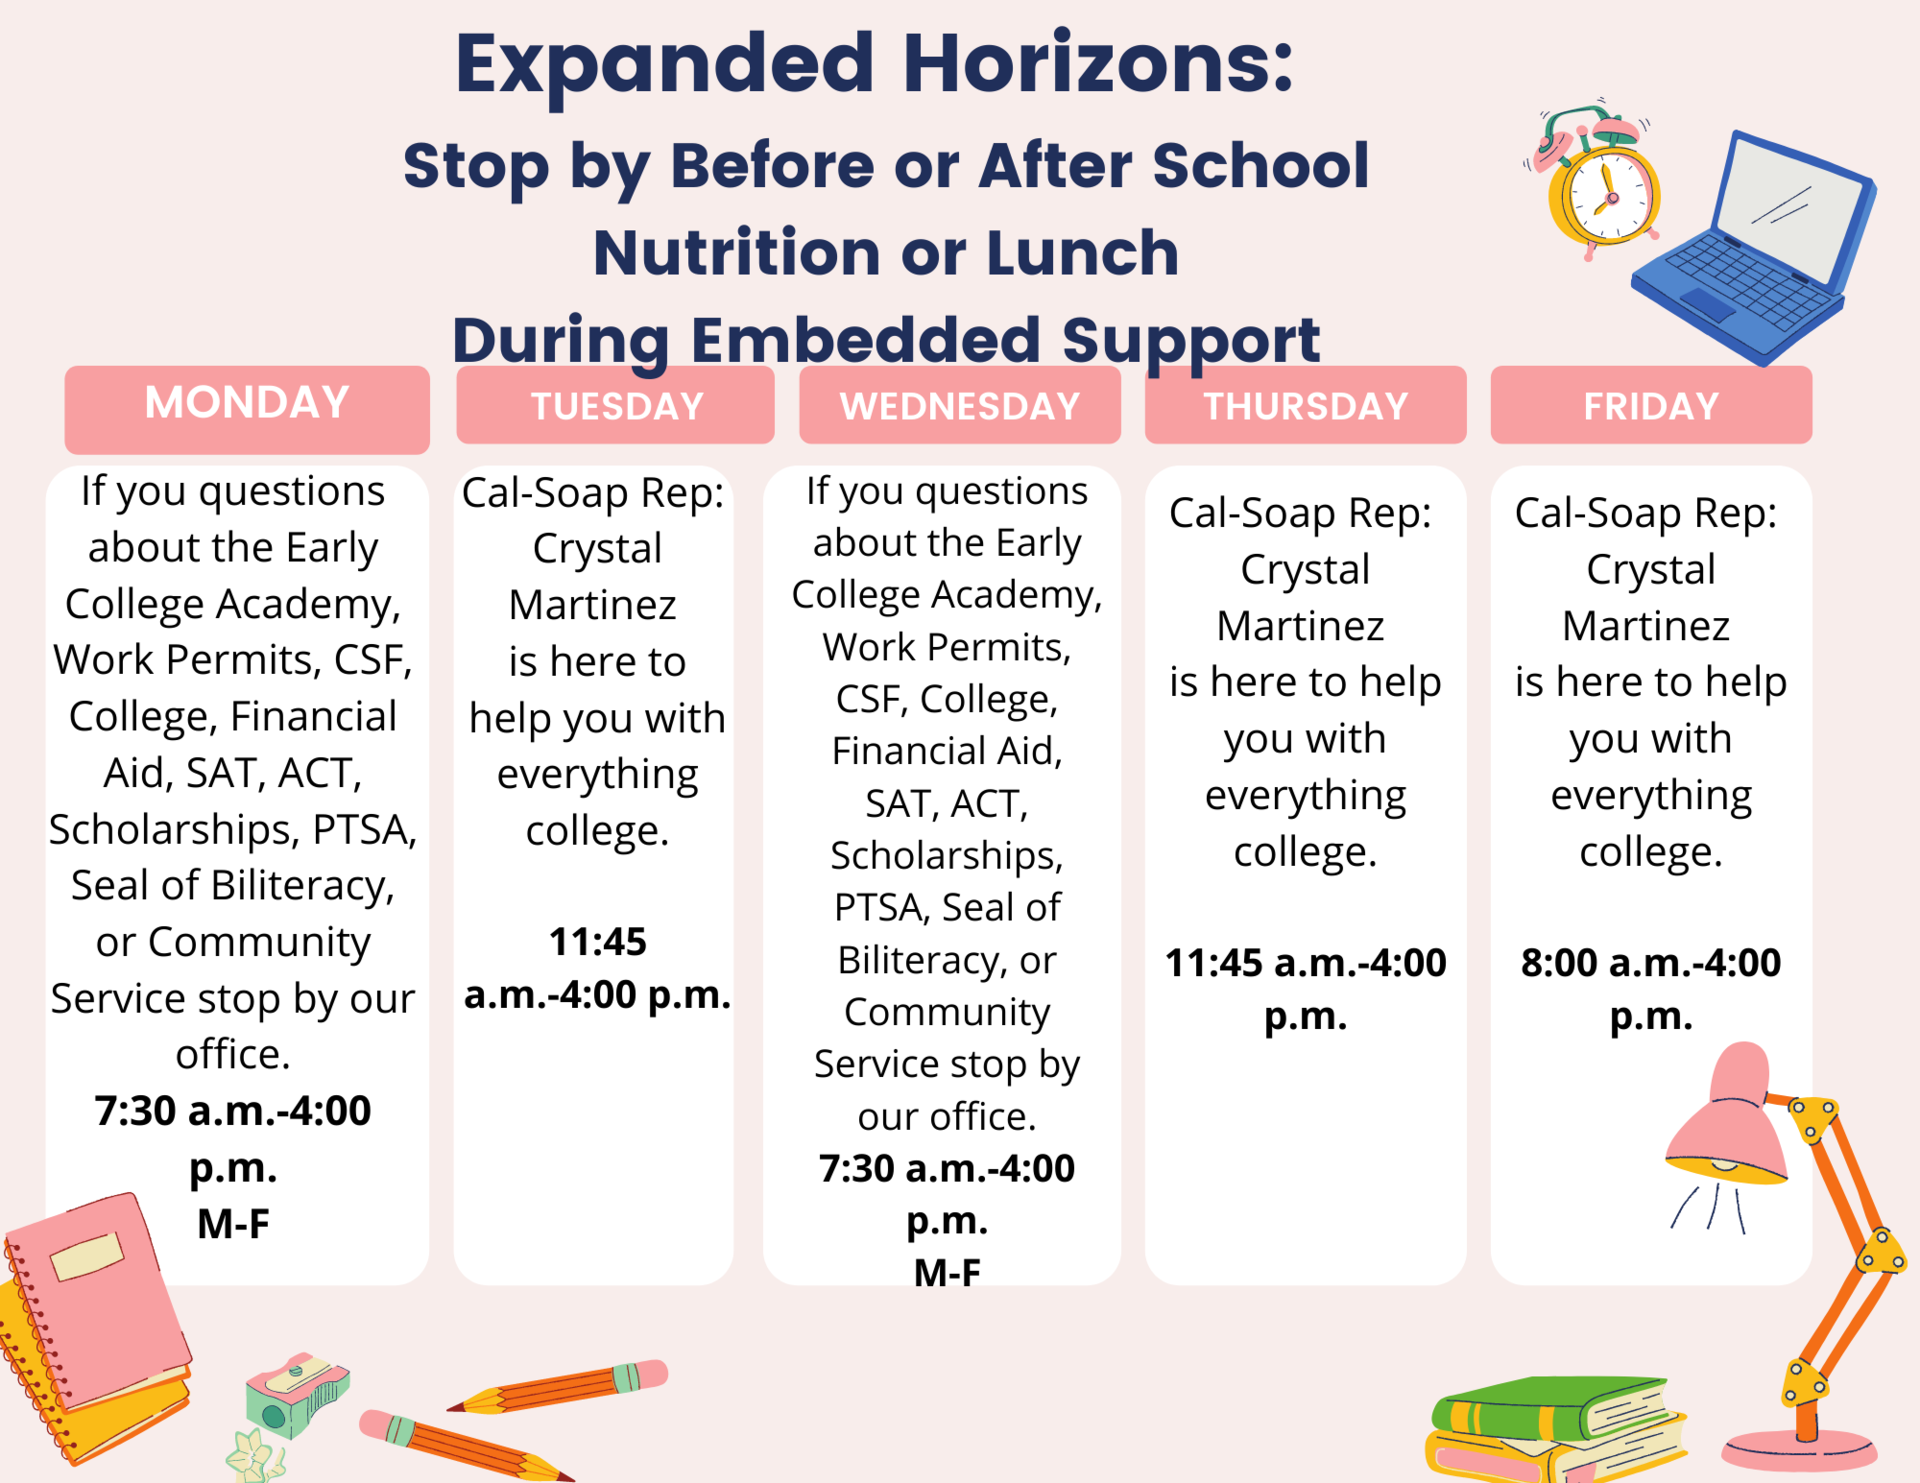 This week in the Horizons Office